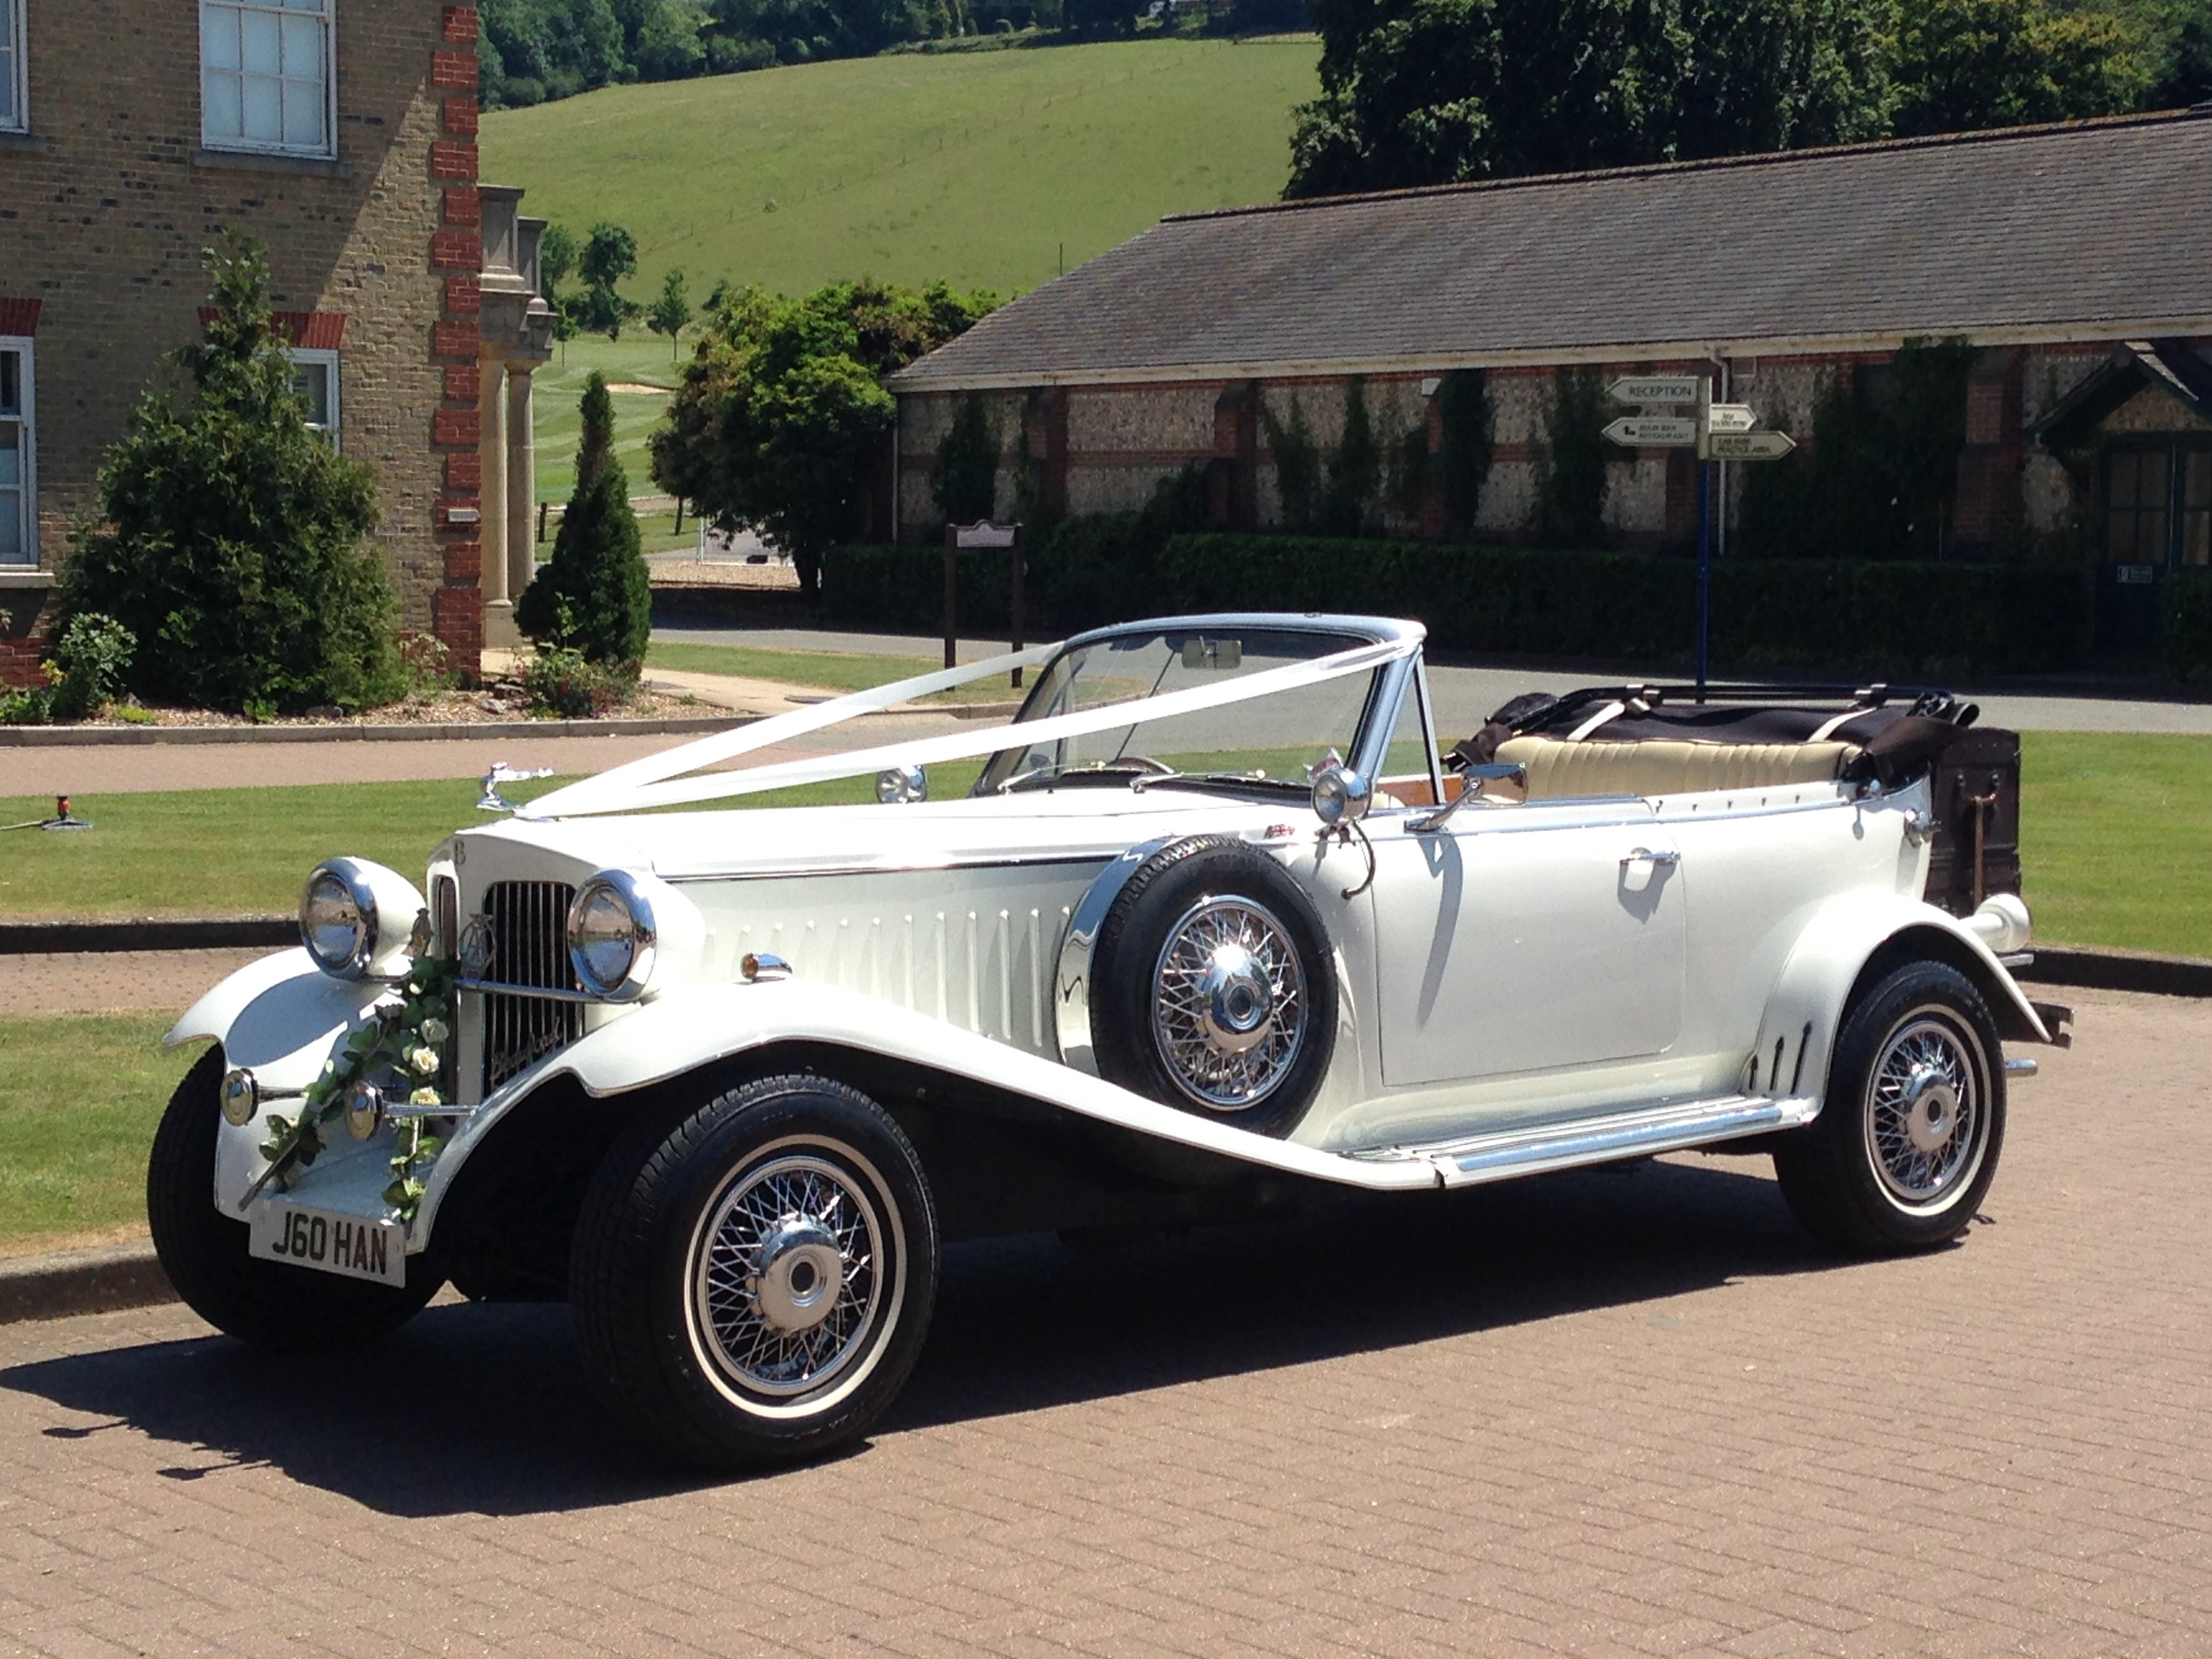 White Beauford Open Tourer